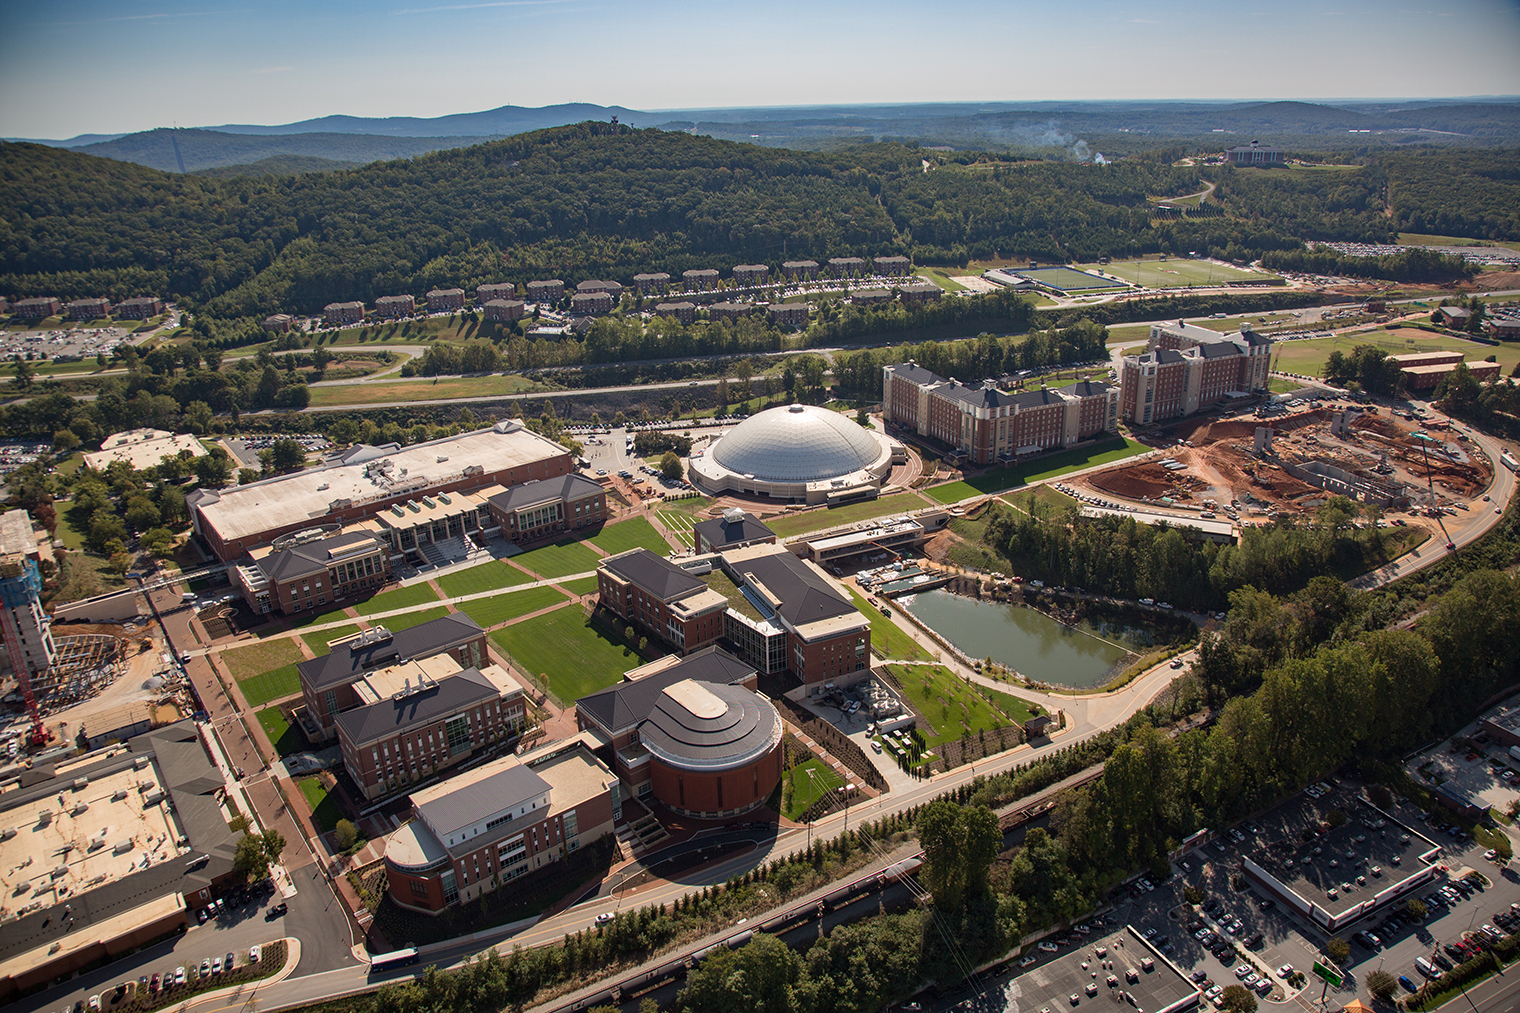 Liberty University's major campus rebuilding is one of several ways the university is impacting local and state economy. (Photo by Kevin Manguiob)